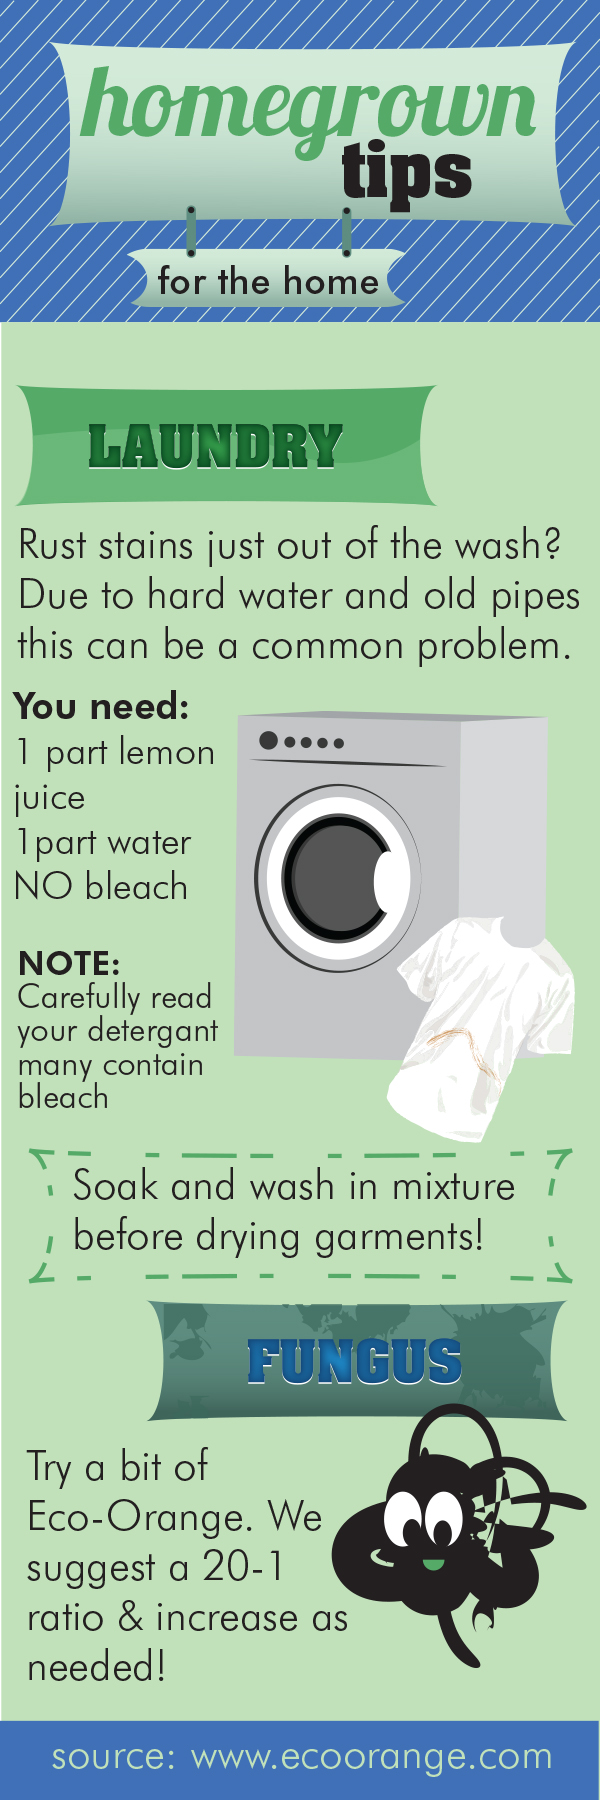 Home-Grown Tips- Laundry